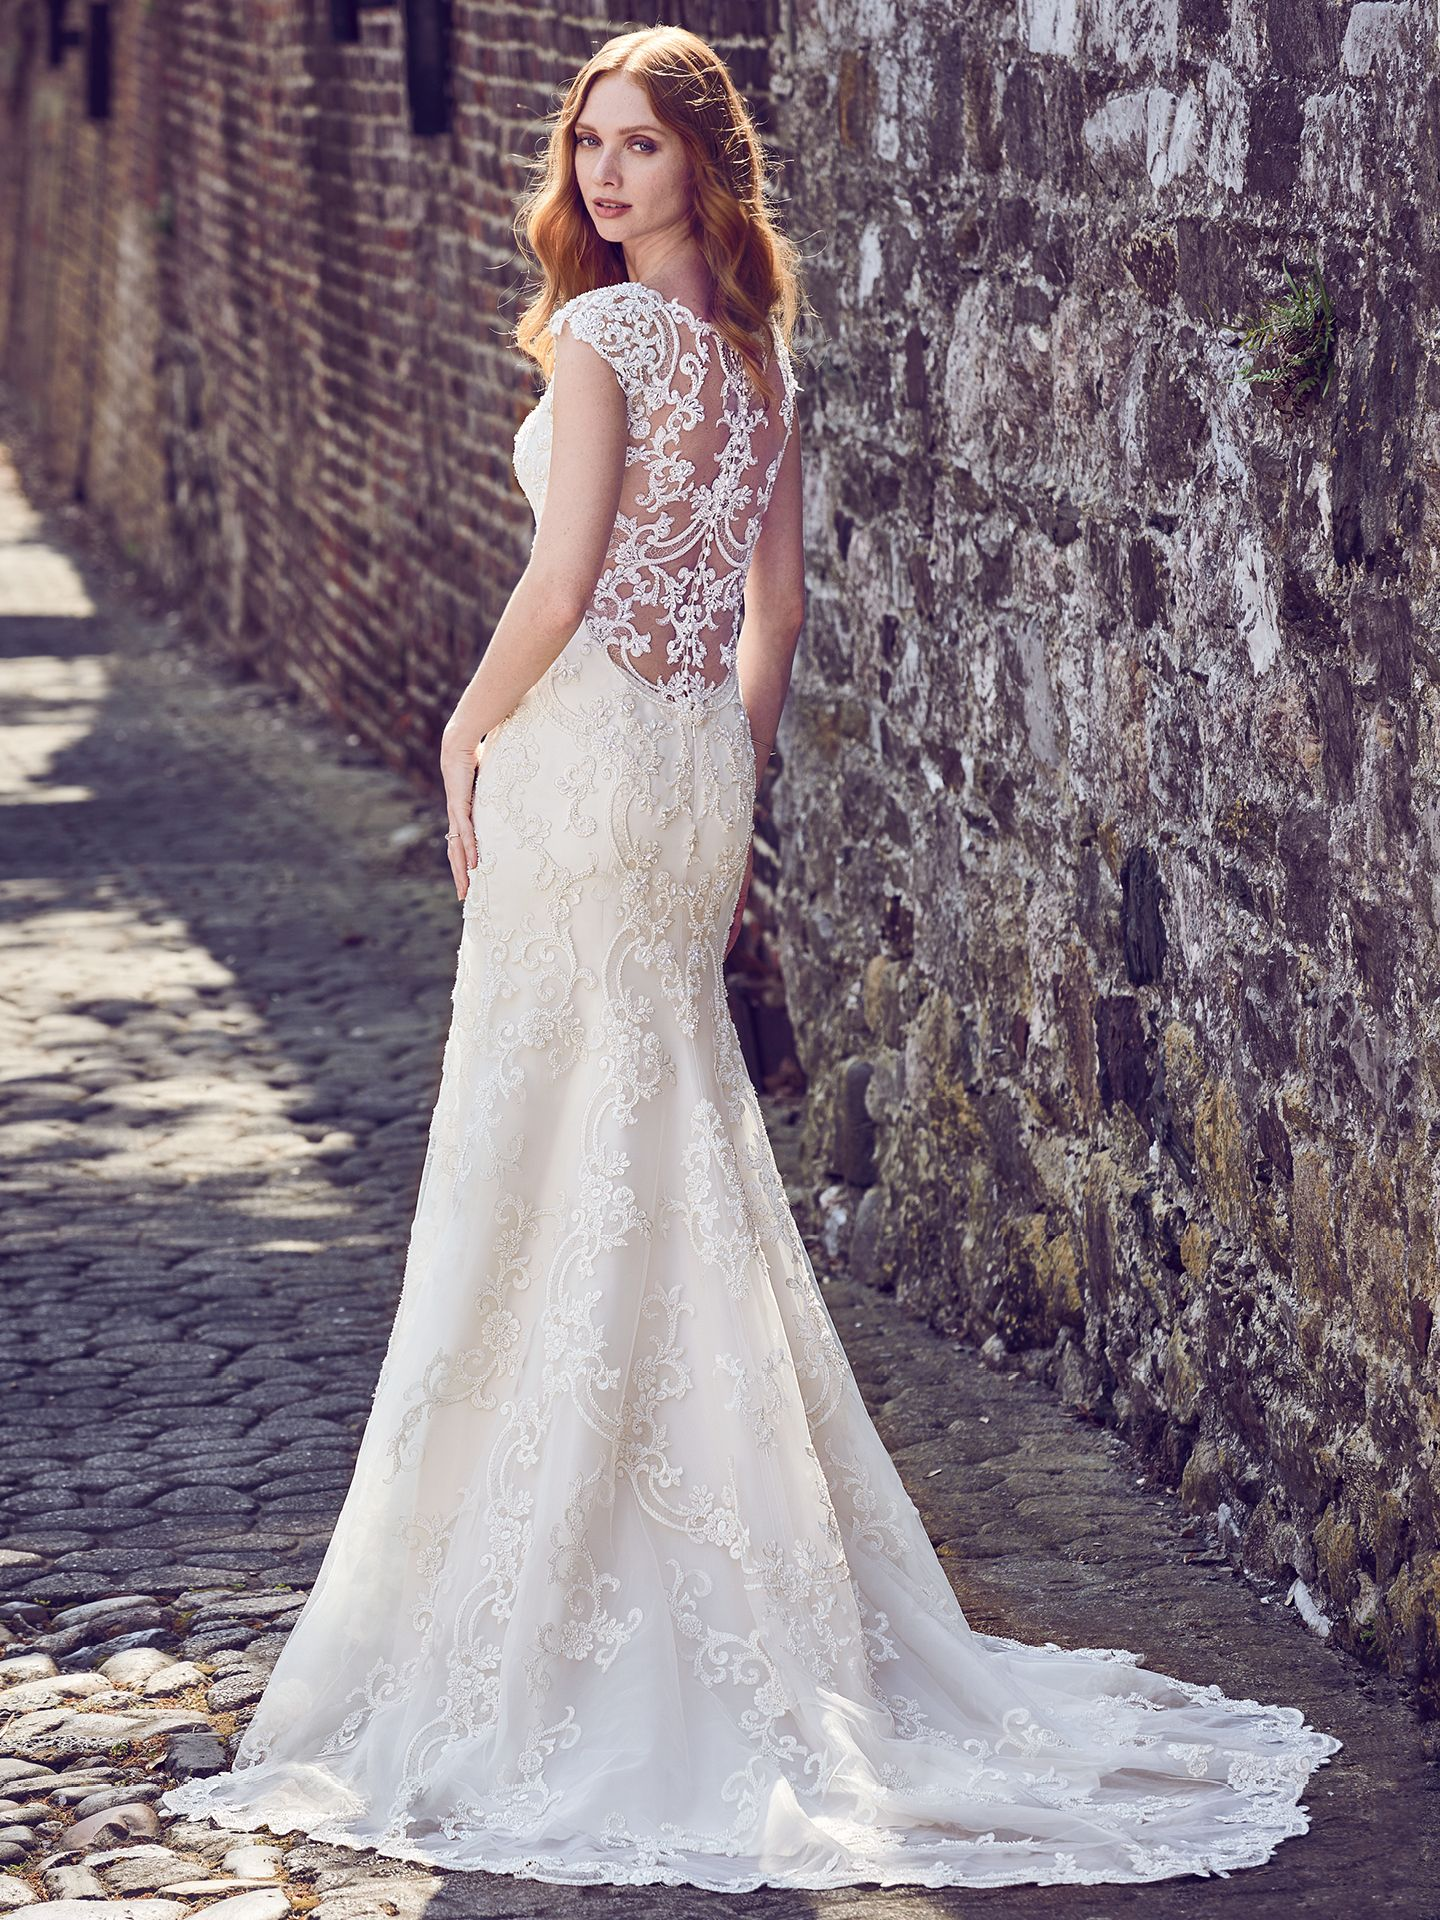 Everly by Maggie Sottero. This elegant fit-and-flare wedding dress features a tulle overlay of beaded lace motifs, creating an illusion bateau over sweetheart neckline, illusion cap-sleeves, illusion scoop back, and beautiful scallop hemline. Finished with pearl buttons and zipper closure. Upcoming 2018 wedding dress trends from Maggie Sottero!